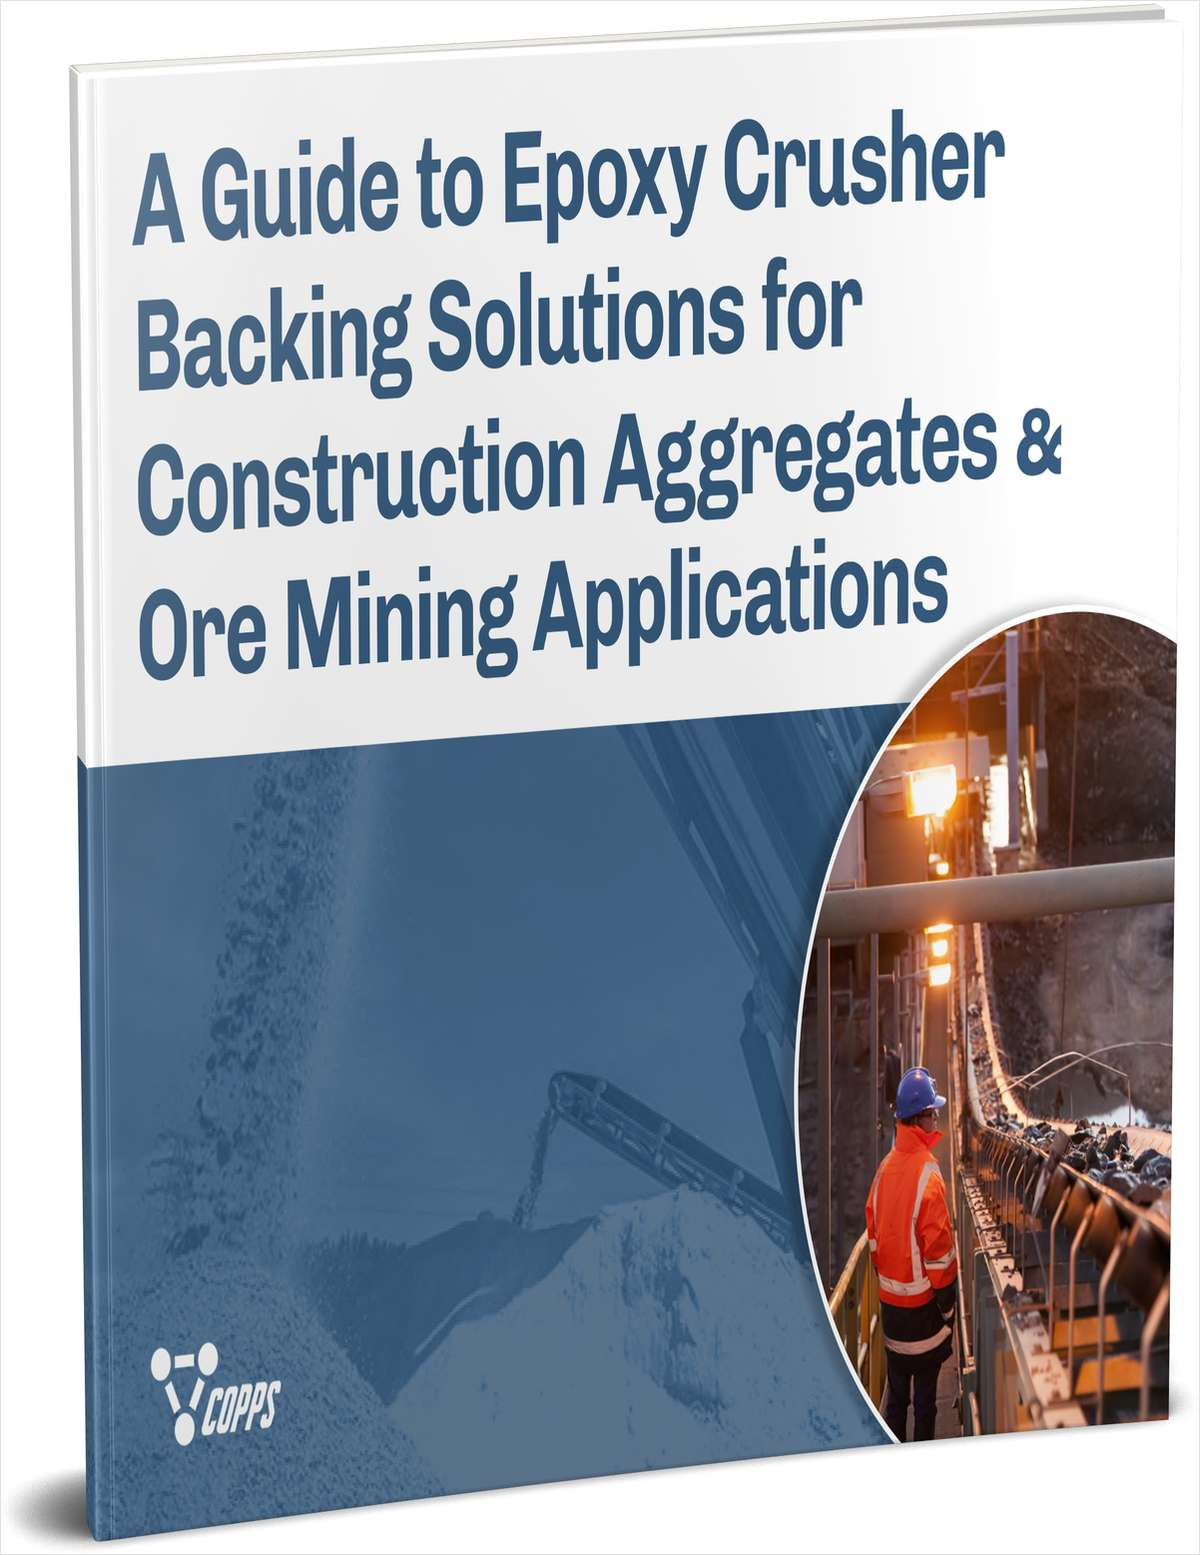 Crusher Backing Solutions for Construction Aggregate & Mining Applications